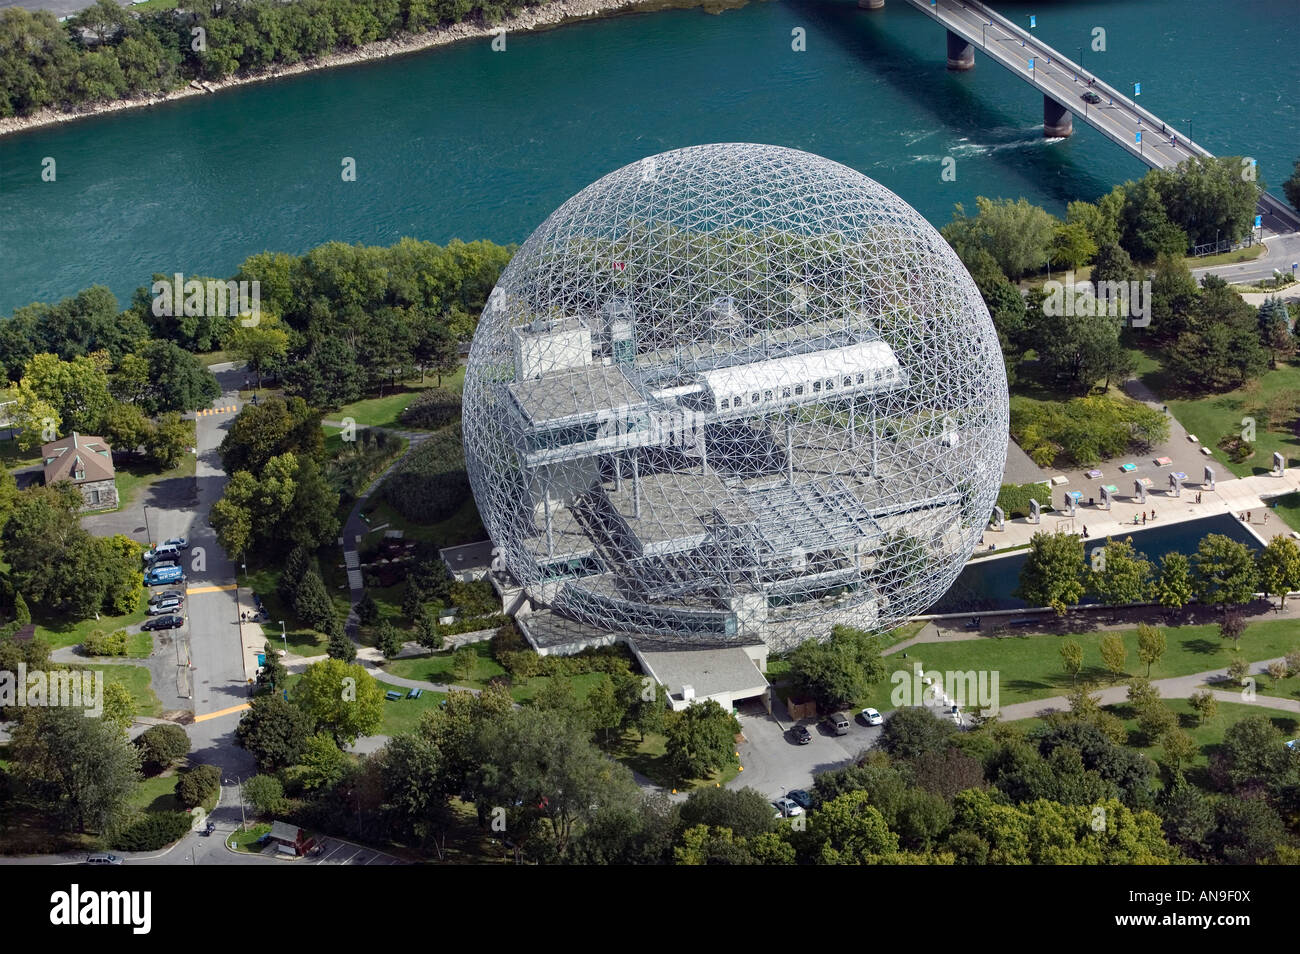 aerial view above Biosphère geodesic dome Canadian environmental museum Montreal Quebec Canada - Stock Image